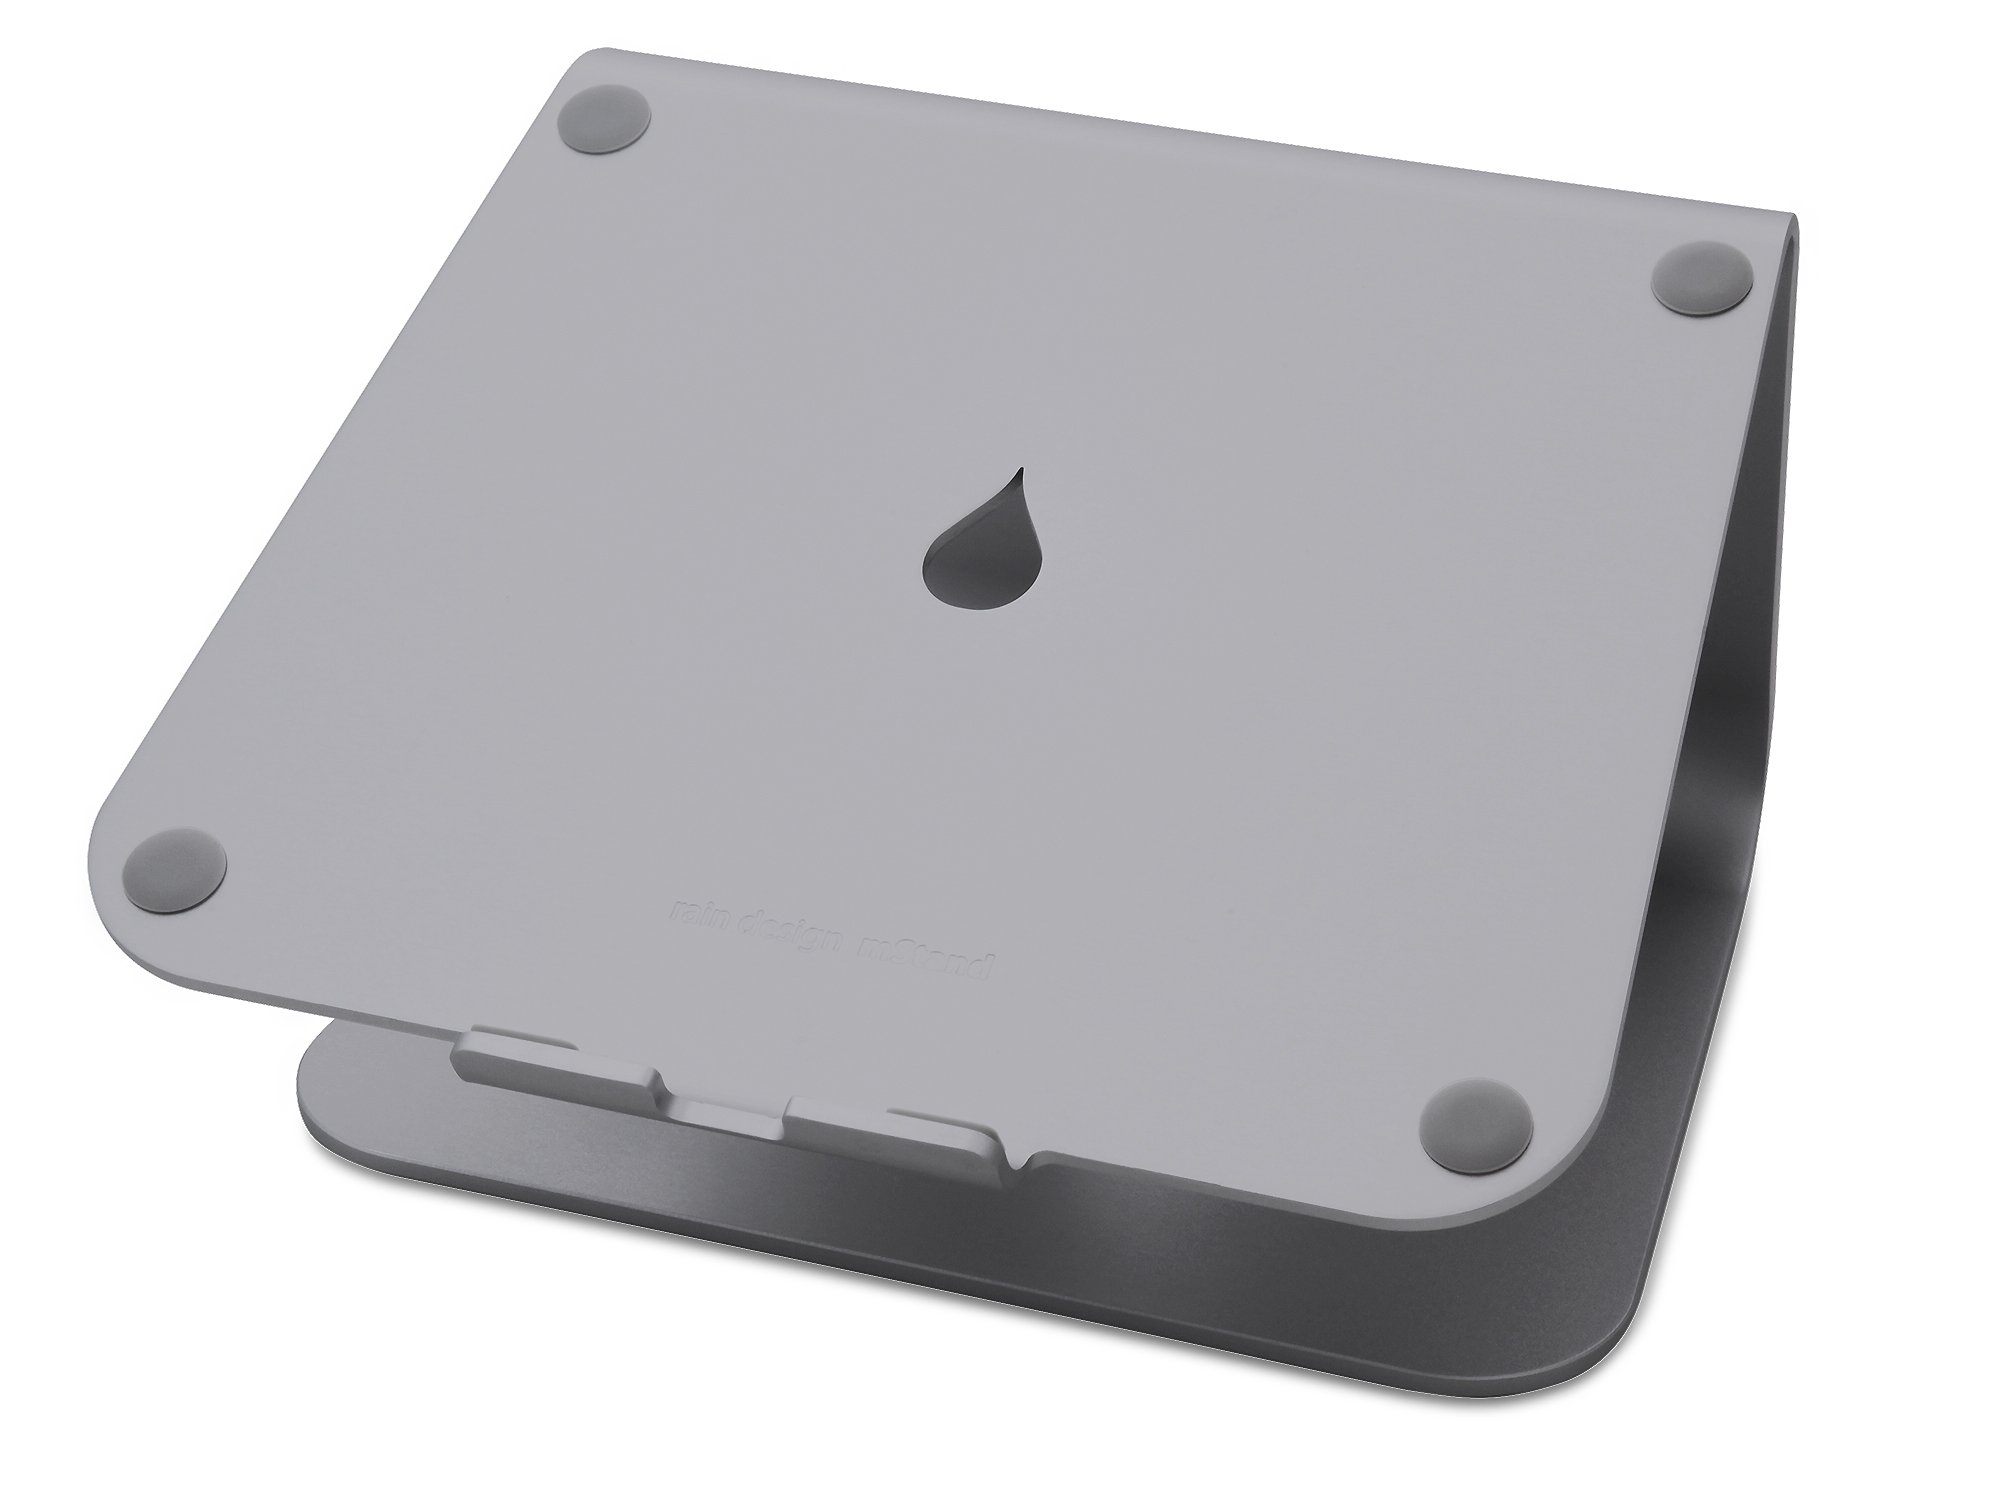 Rain Design mStand360 Laptop Stand with Swivel Base, Space Gray (Patented) by Rain Design